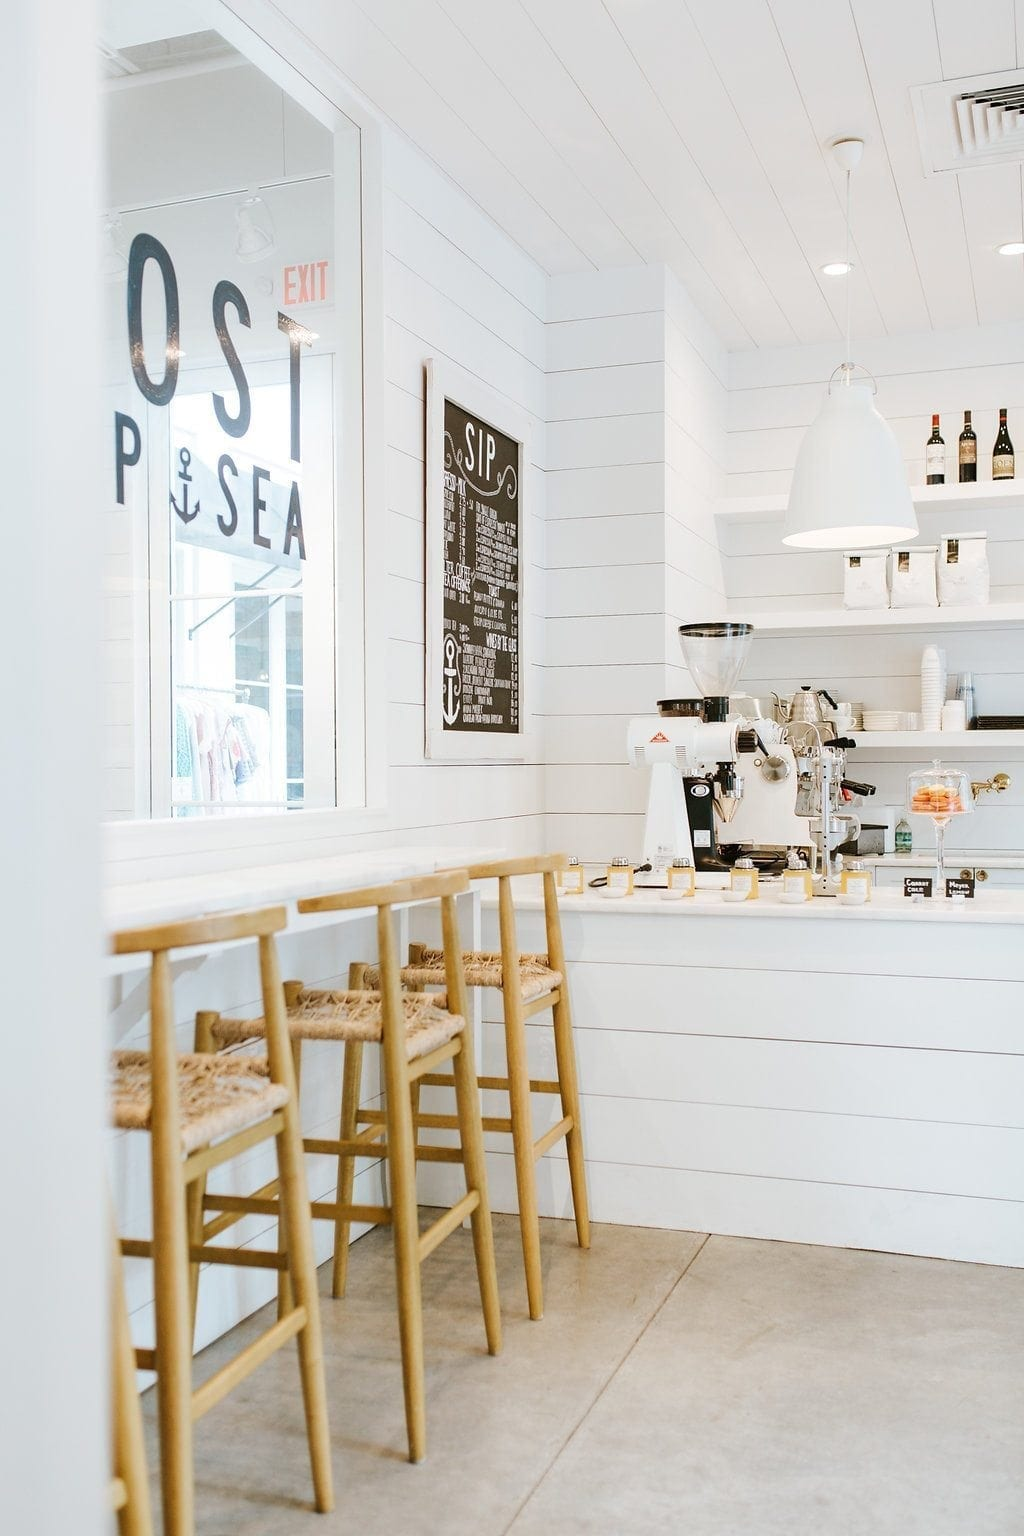 The Outpost Coffee Shop in Rosemary Beach. All white shiplap design coffee shop. This bright and happy coffee shop has character and fun. I love the design of the white bar counter and all white shelving with white lighting.